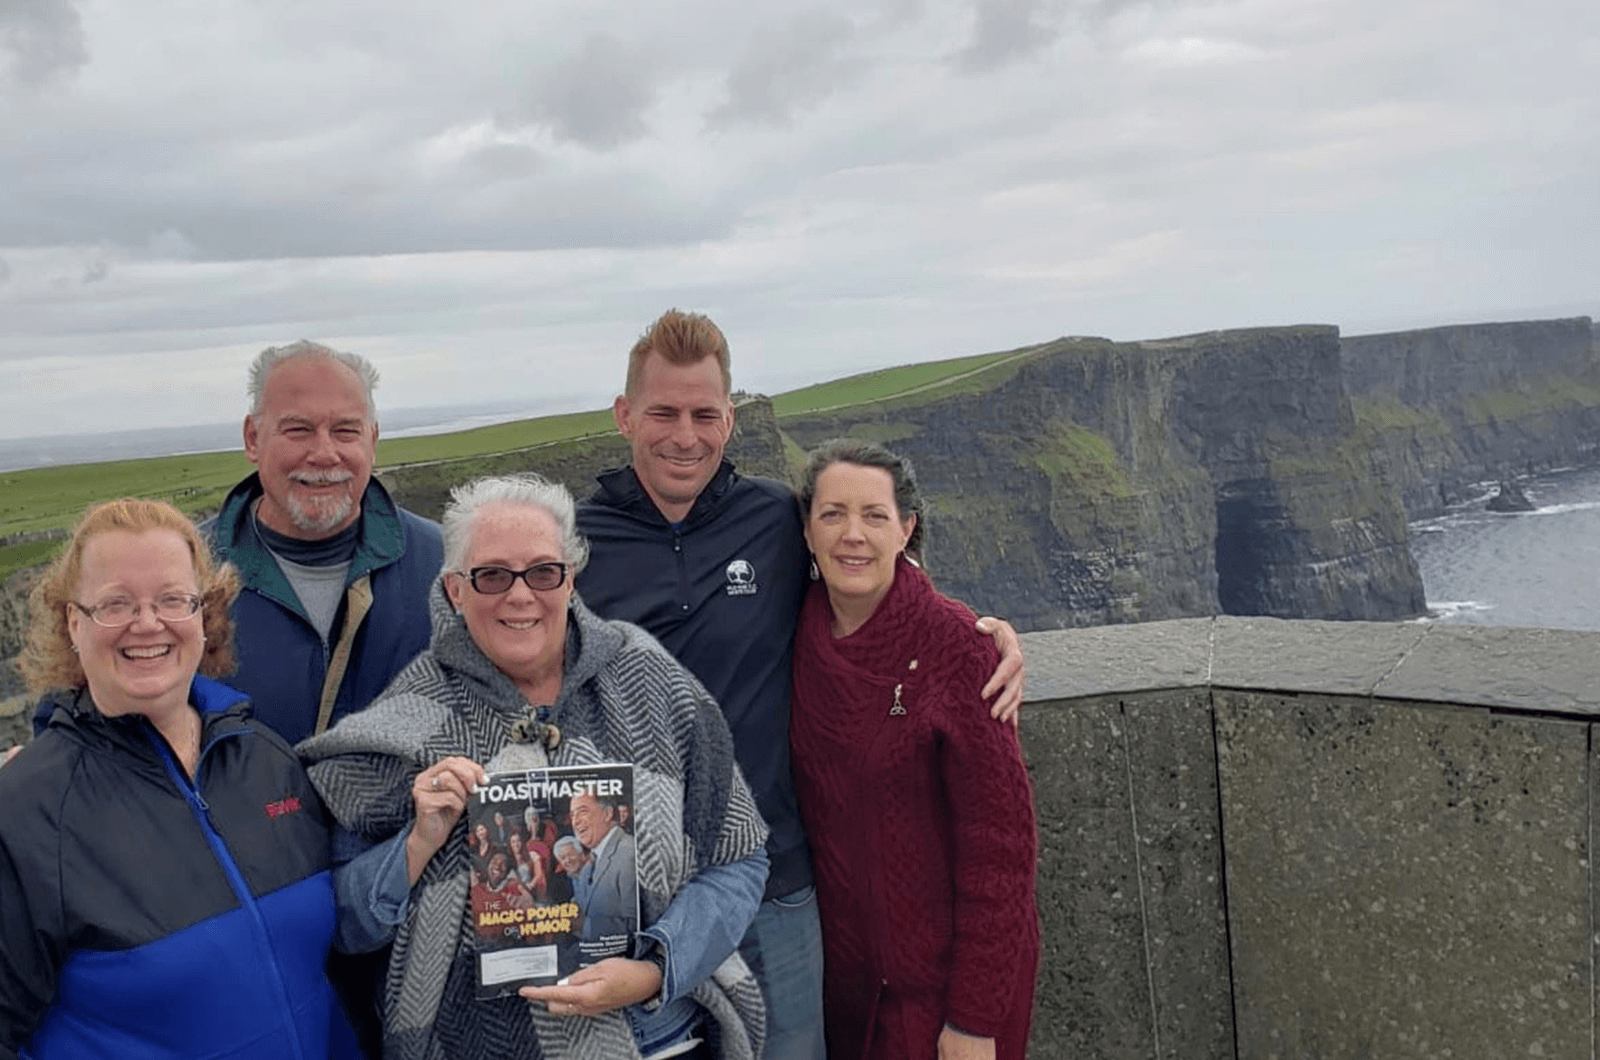 Linda Dressler, John Gormley, Kathy Nosek, Mike Gobber, and Catherine Terpstra, all of Downers Grove, Illinois, traveled to Ireland on a Realtor Association Trade Mission. Some members of Mainstreet Organization of Realtors and Mainstreet Toastmasters pose for a photo at the Cliffs of Moher.